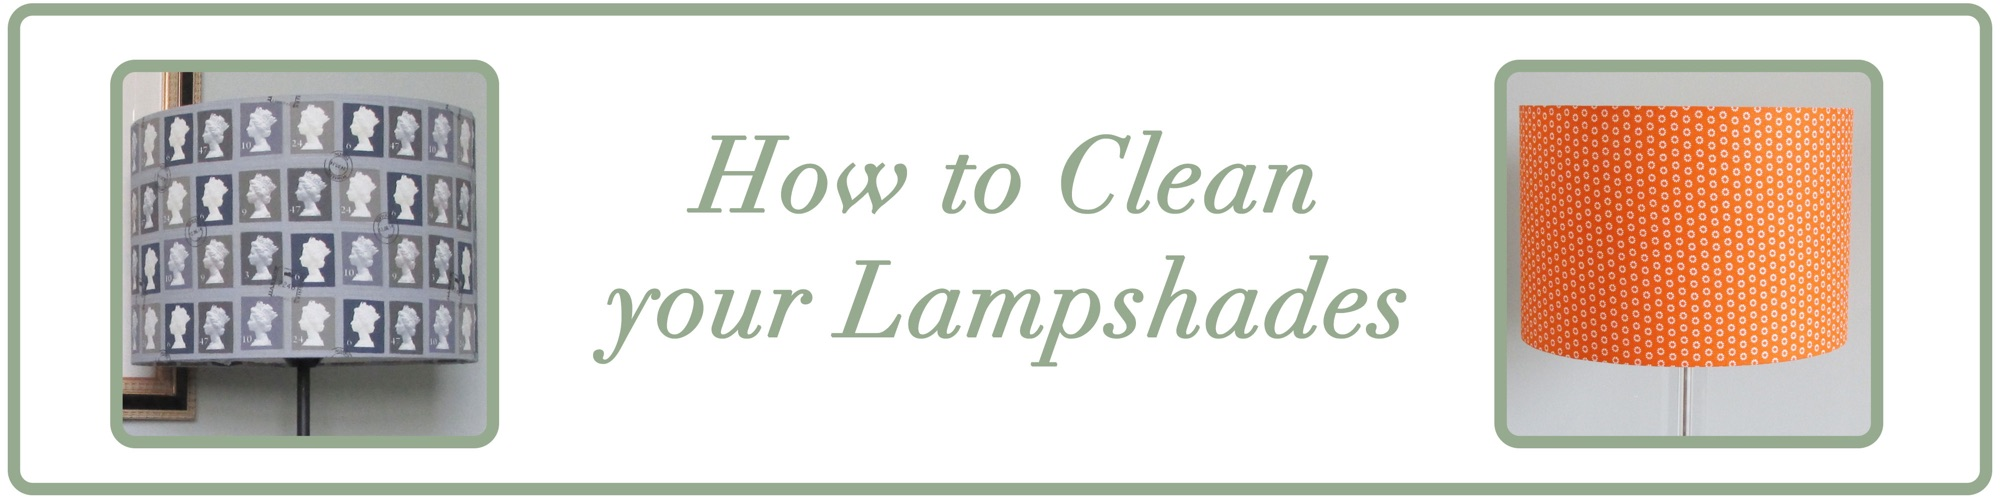 How-clean-your-lampshades-blog-post-title